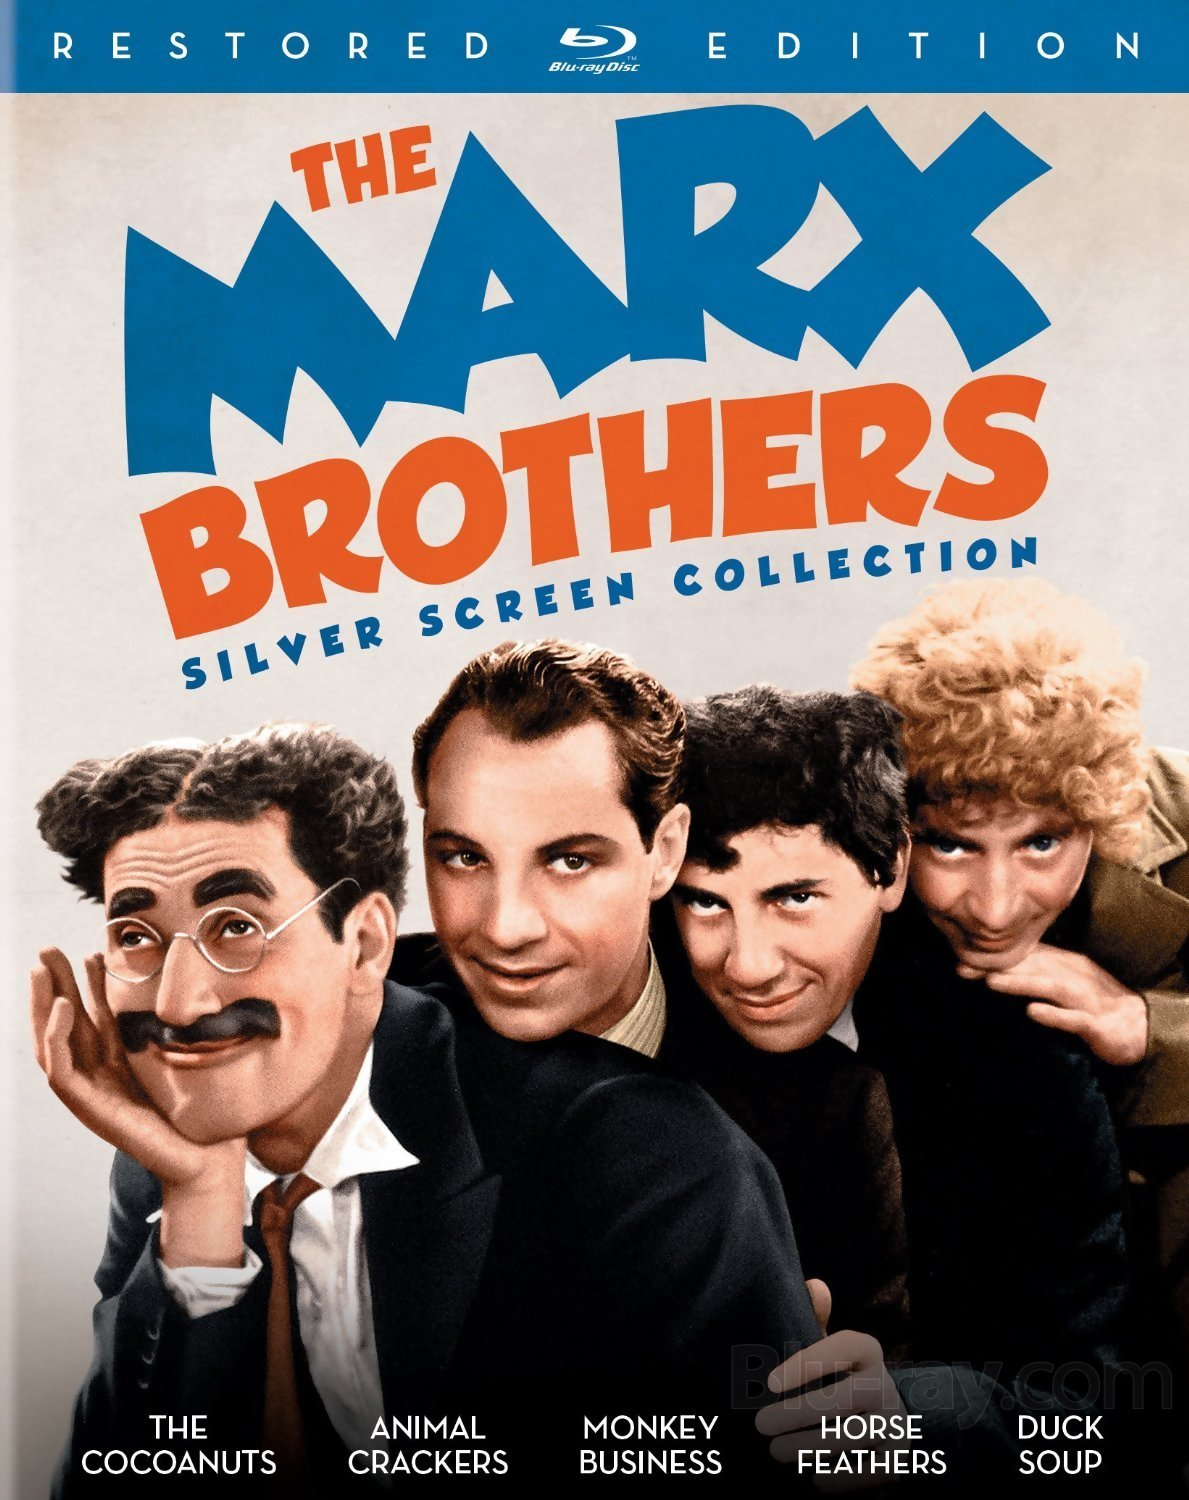 THE MARX BROTHERS SILVER SCREEN COLLECTION Blu-ray